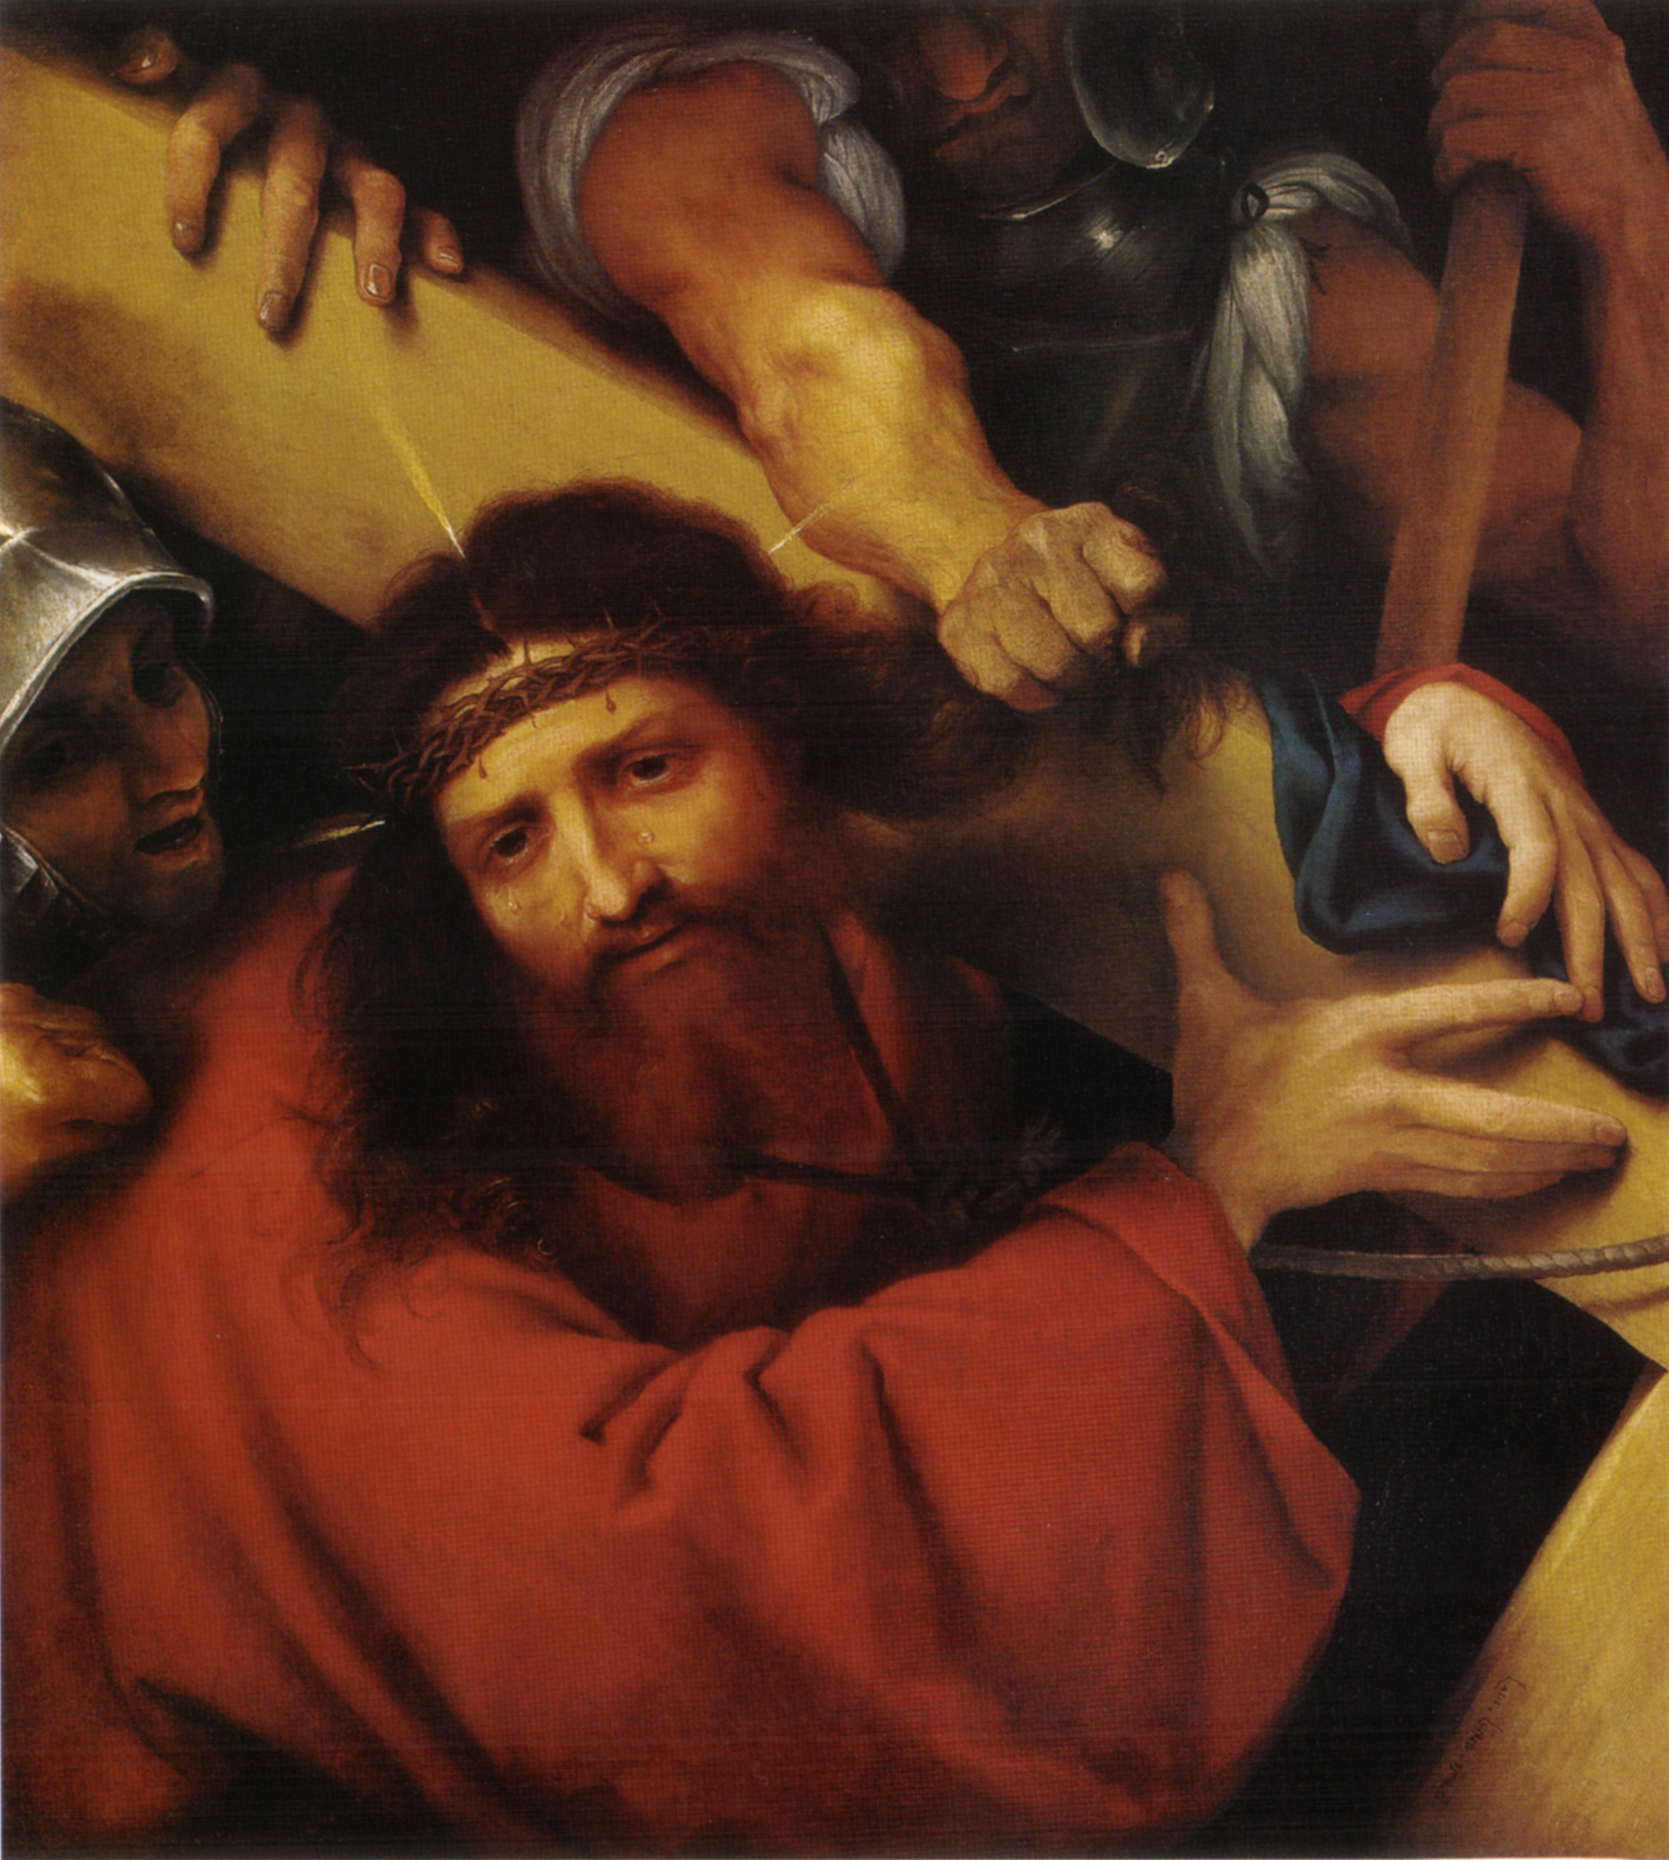 https://uploads5.wikiart.org/images/lorenzo-lotto/christ-carrying-the-cross-1526.jpg